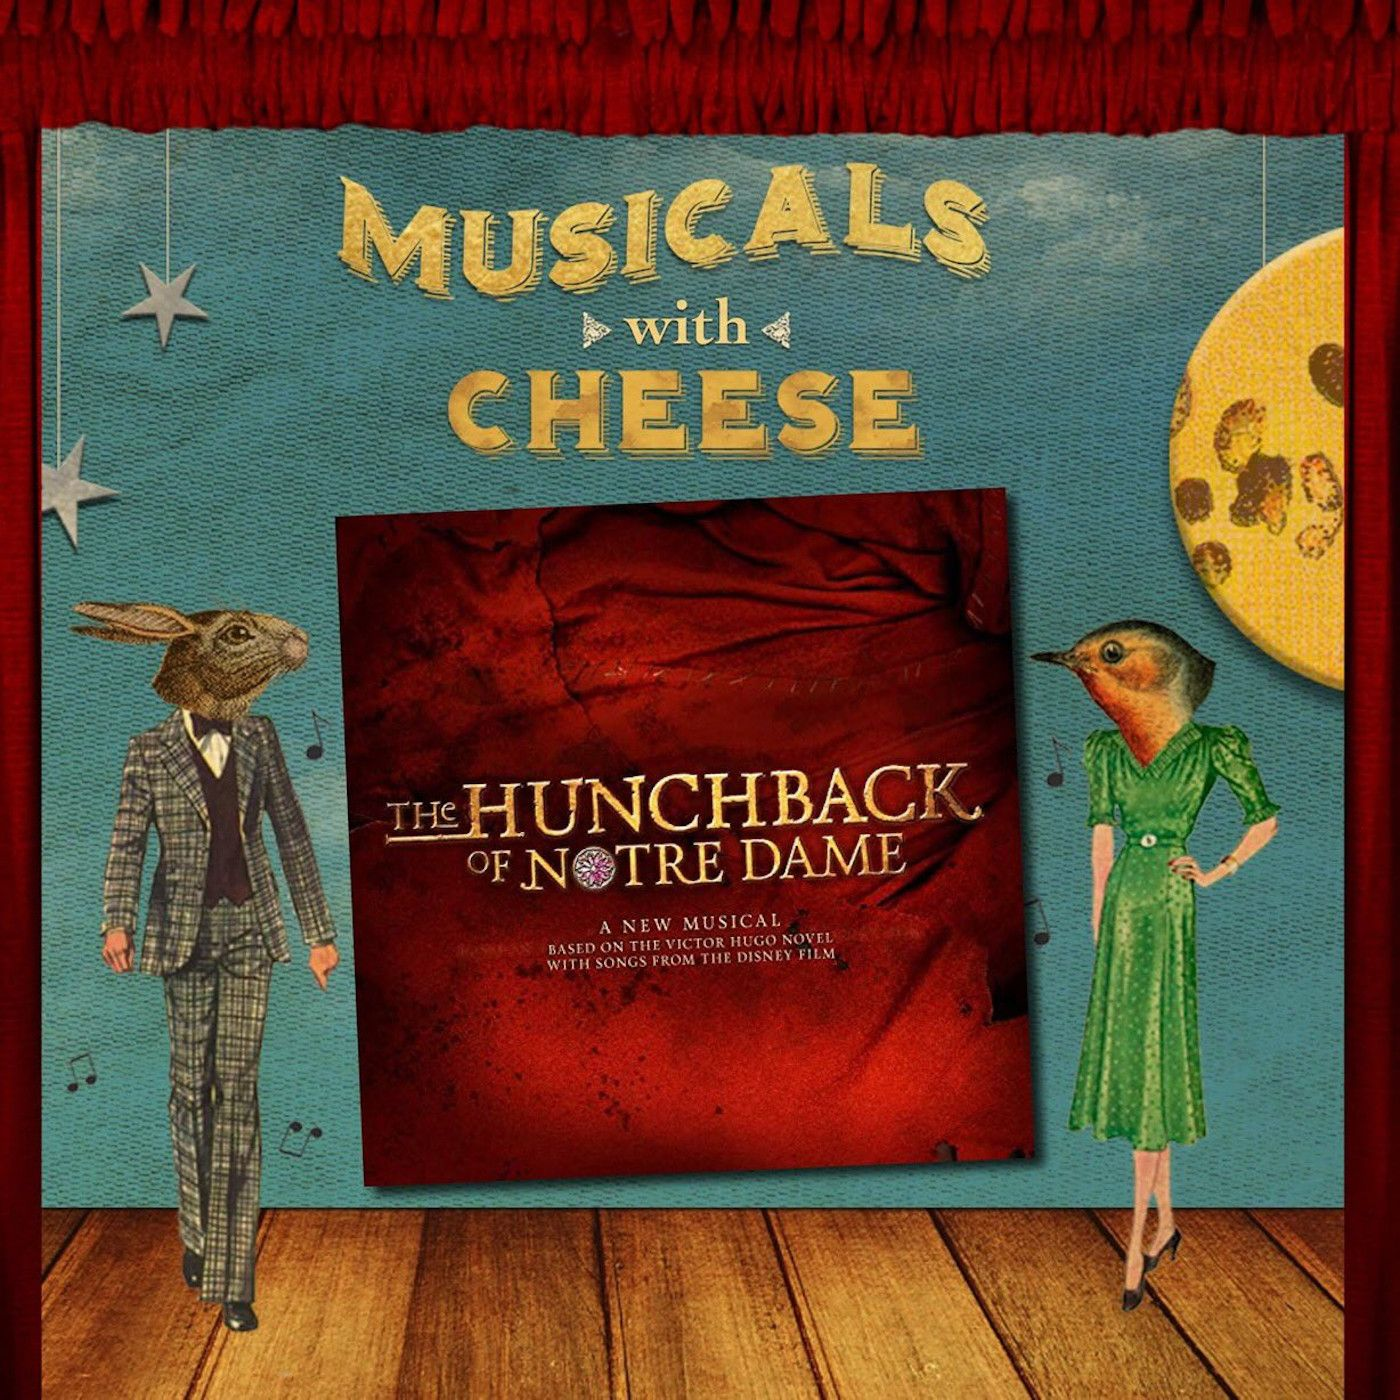 Musicals With Cheese #51: The Hunchback of Notre Dame